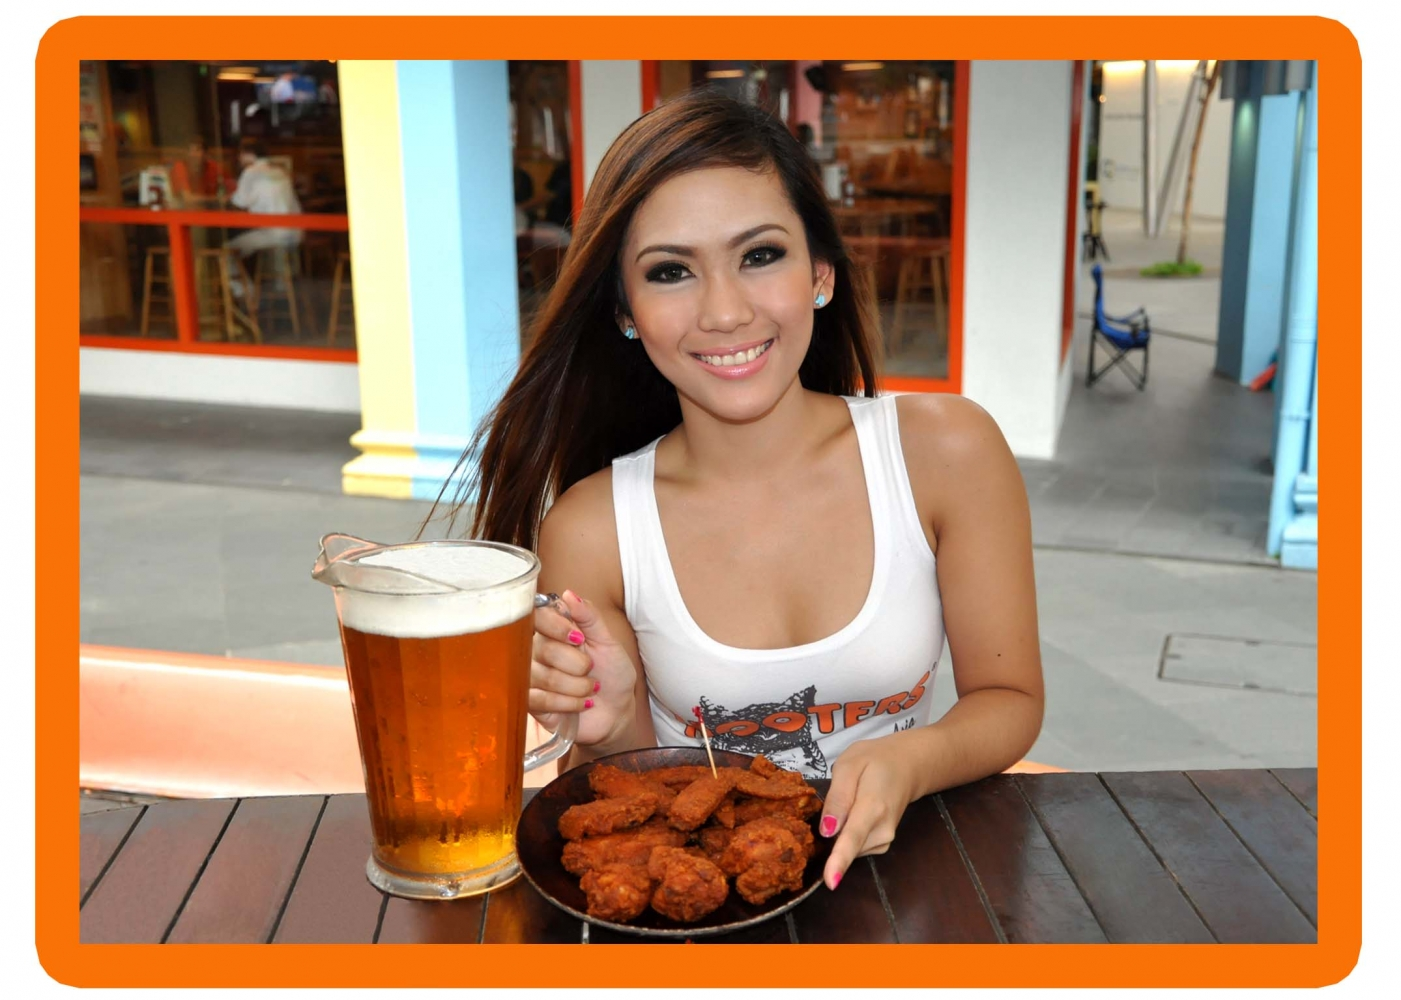 Image from hooters.com.sg